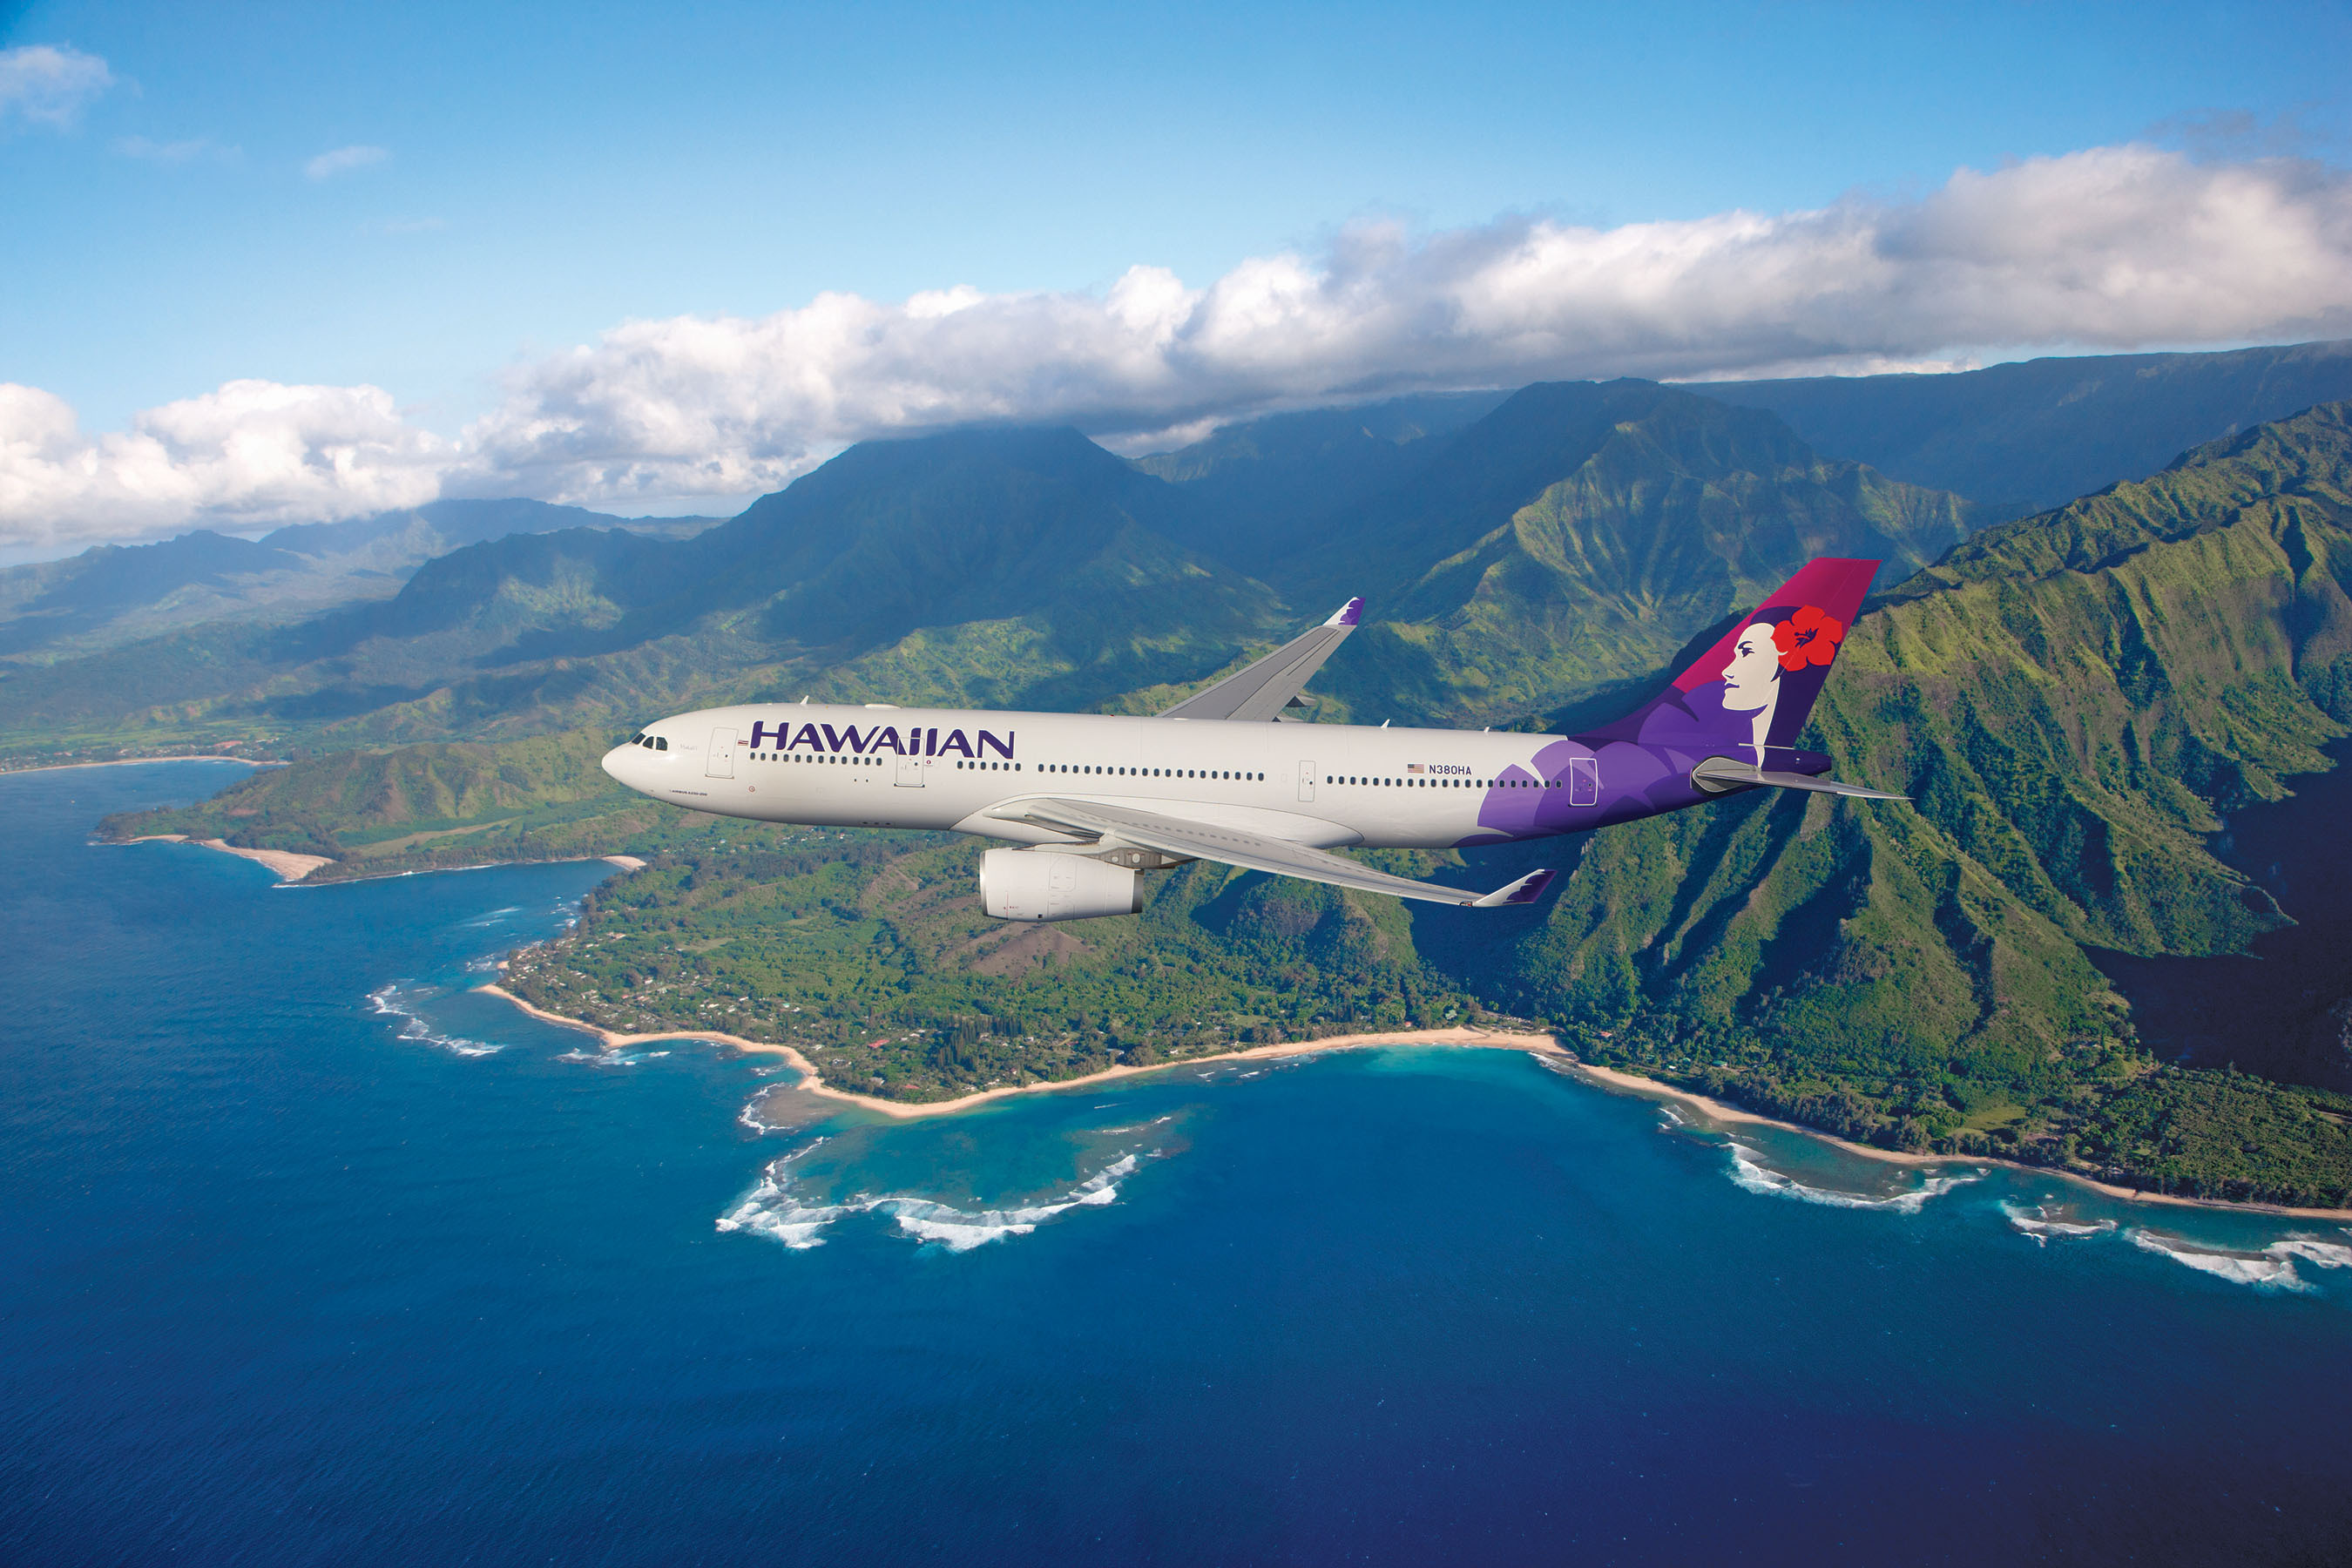 Hawaiian Airlines' wide-body, twin-aisle Airbus A330-200 aircraft.